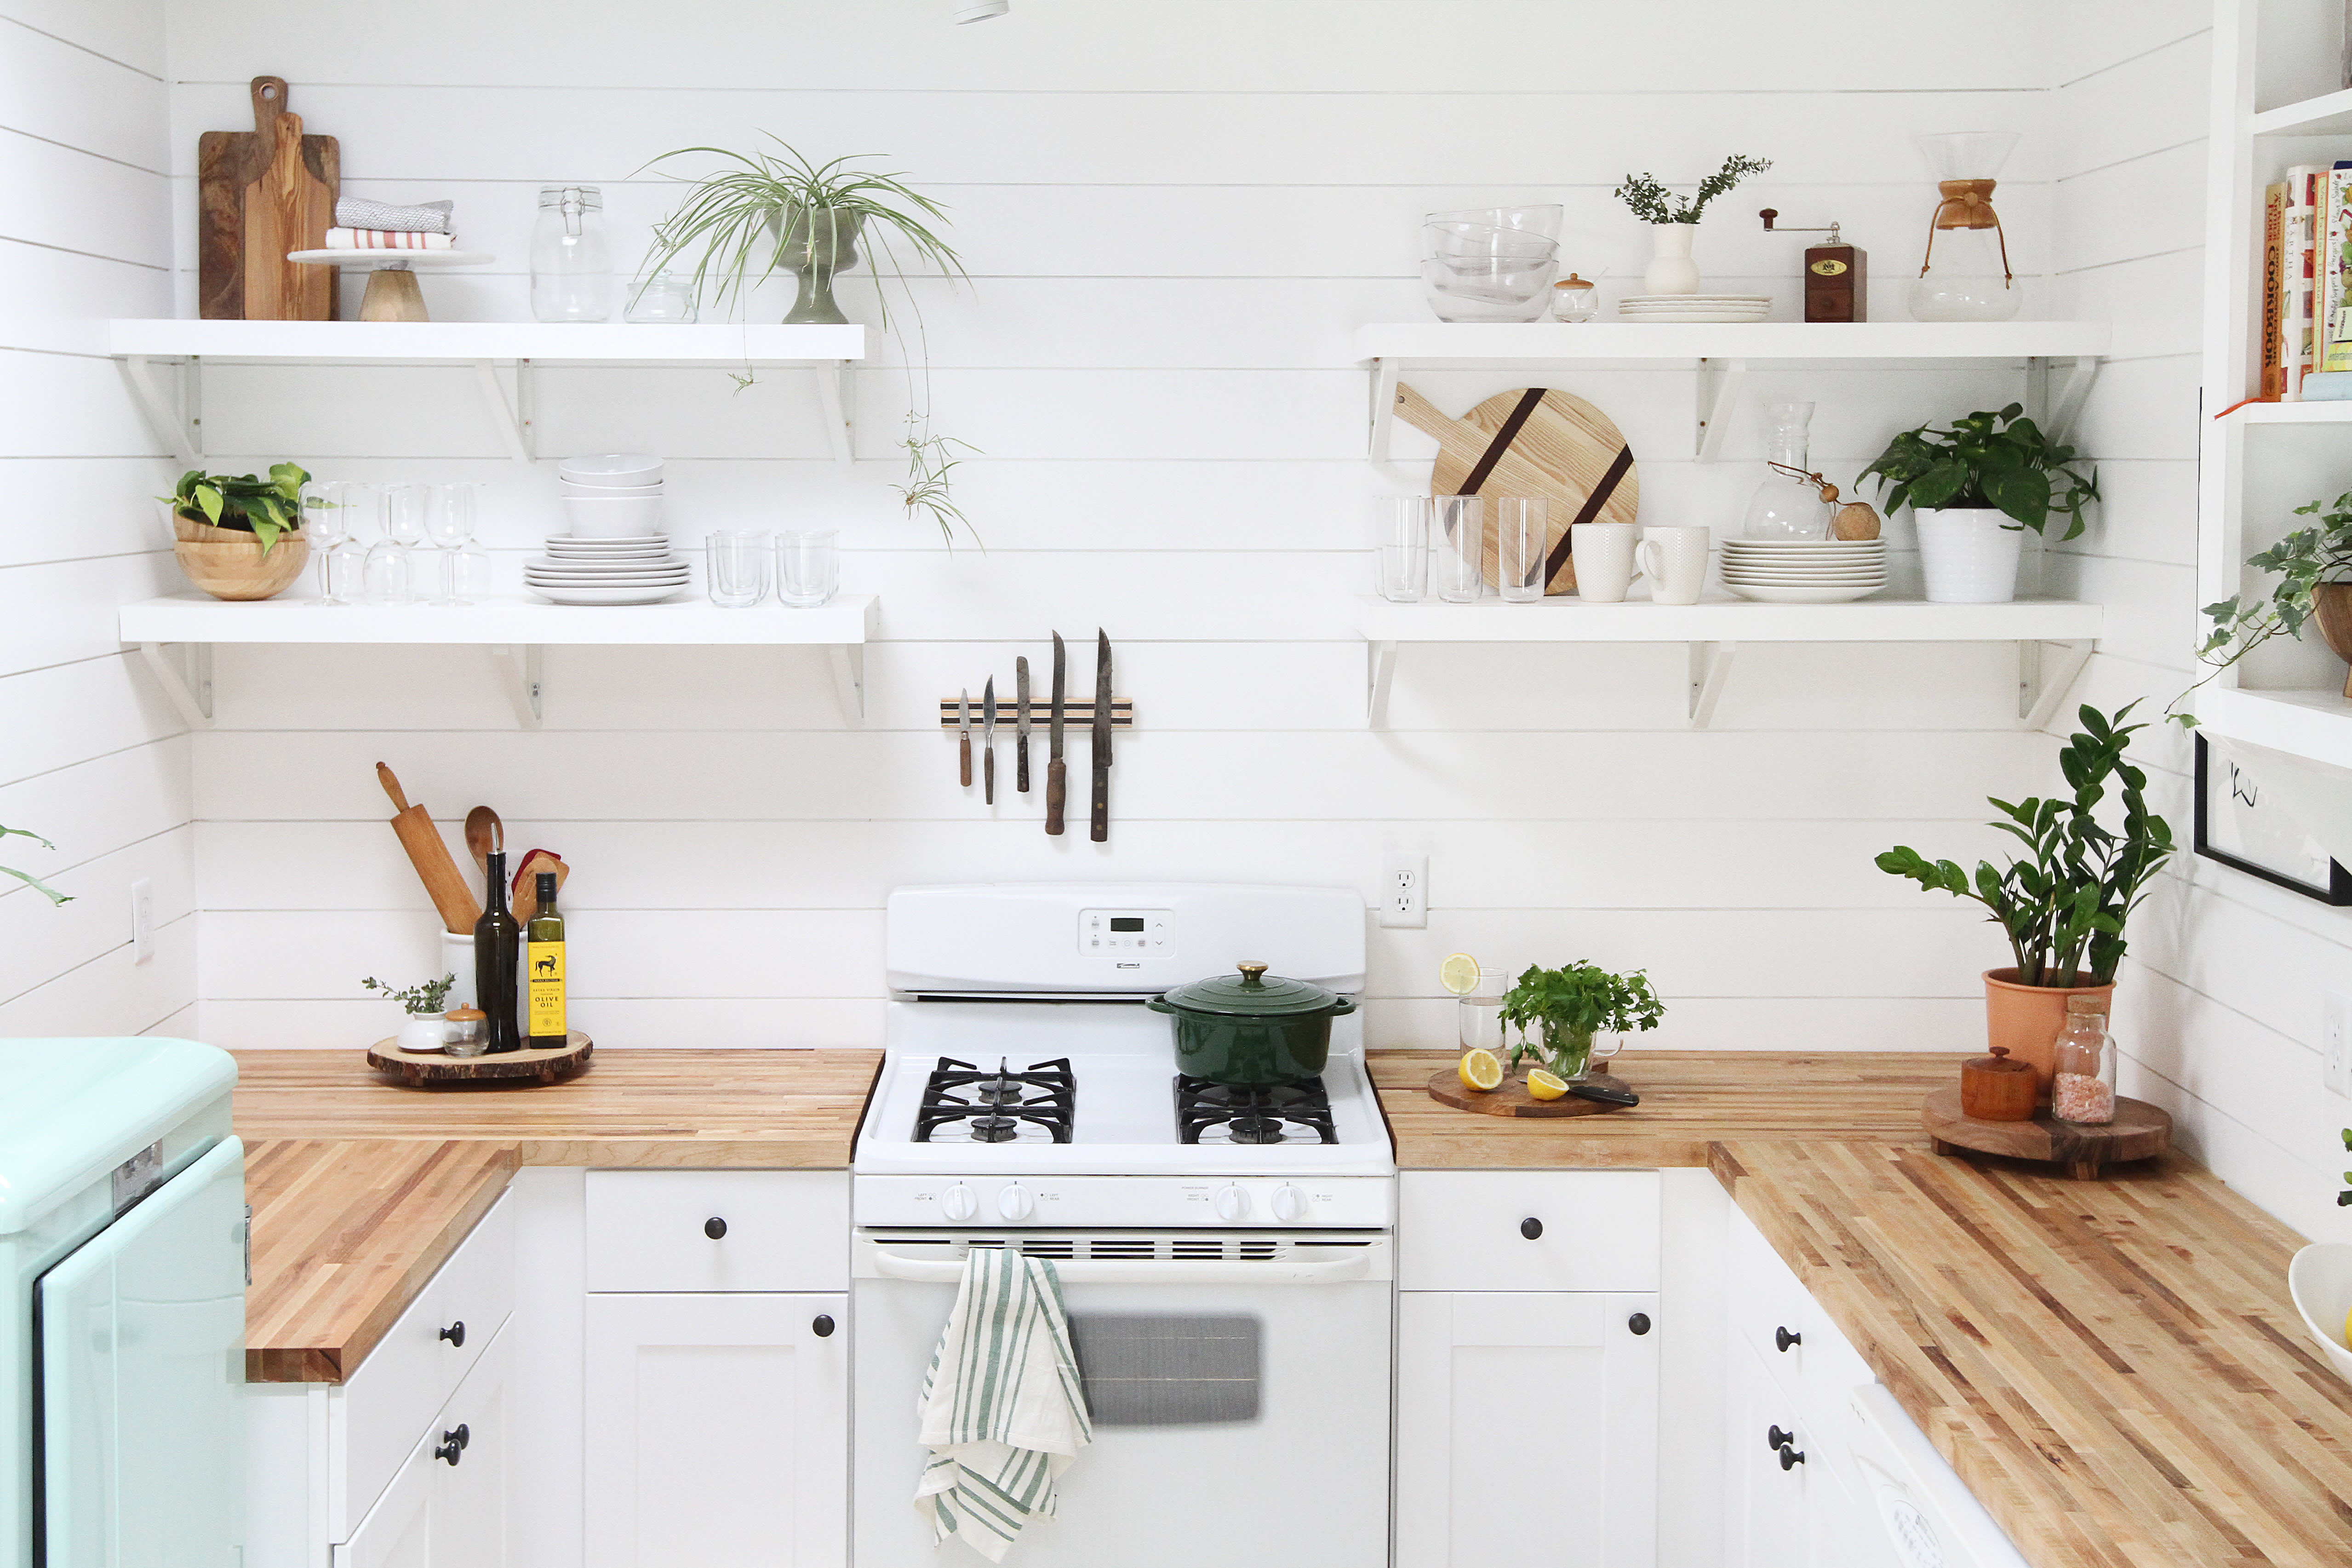 5 budget saving secrets of our 6k kitchen remodel gallery image 1